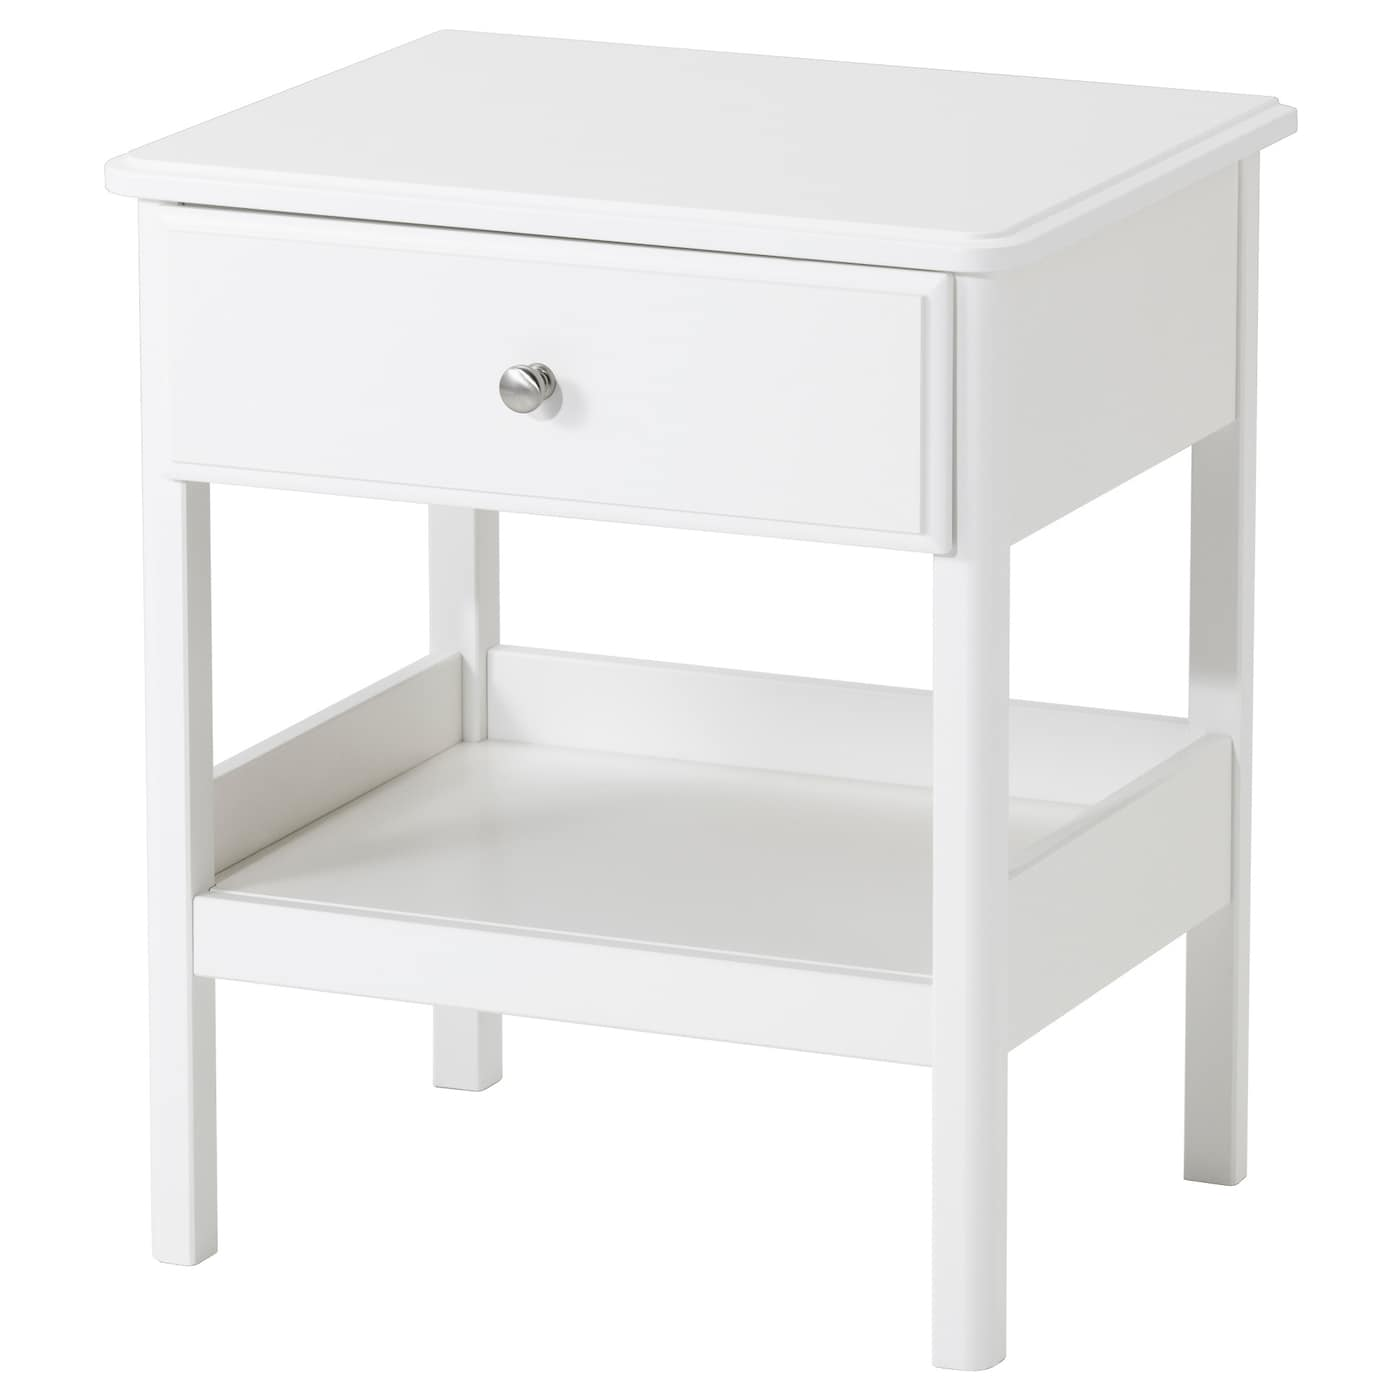 Tyssedal bedside table white 51x40 cm ikea - Bedside table ...